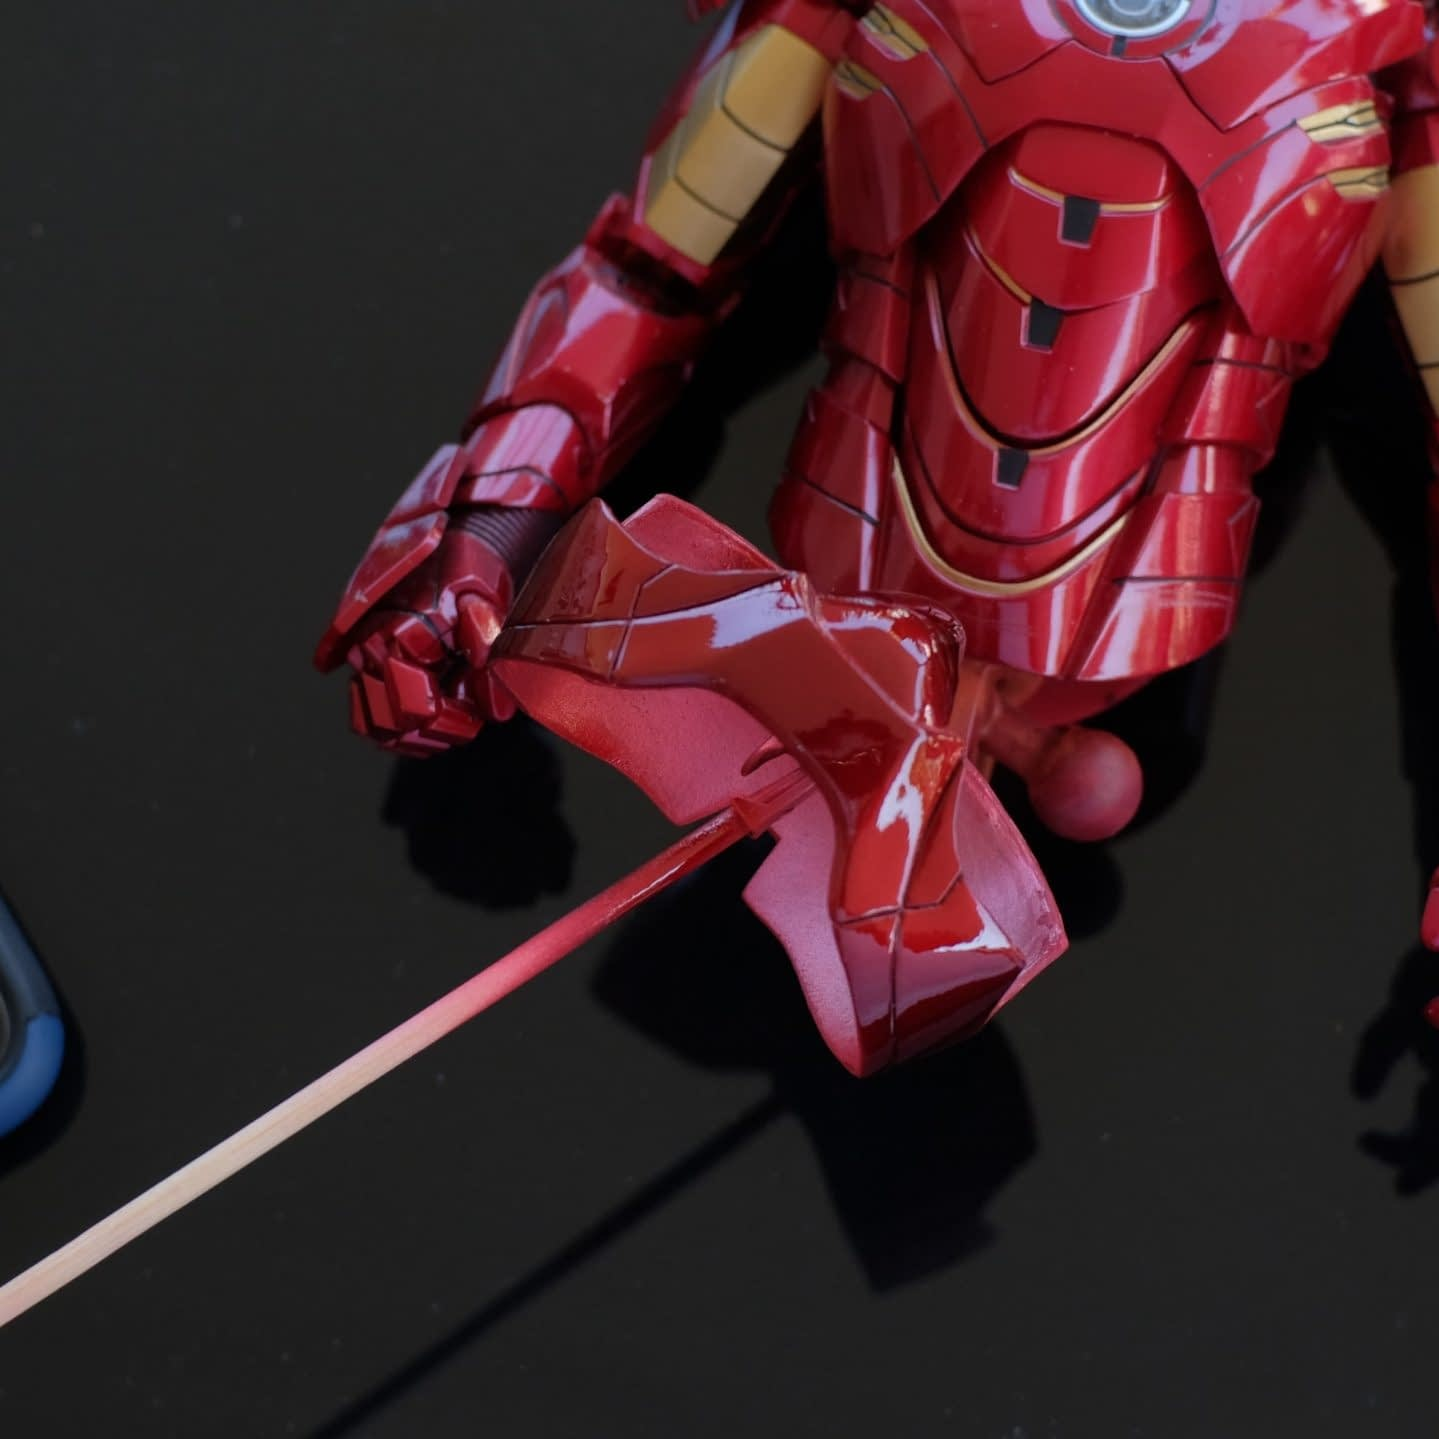 How to fix HT's Iron Man pink panty issue 33